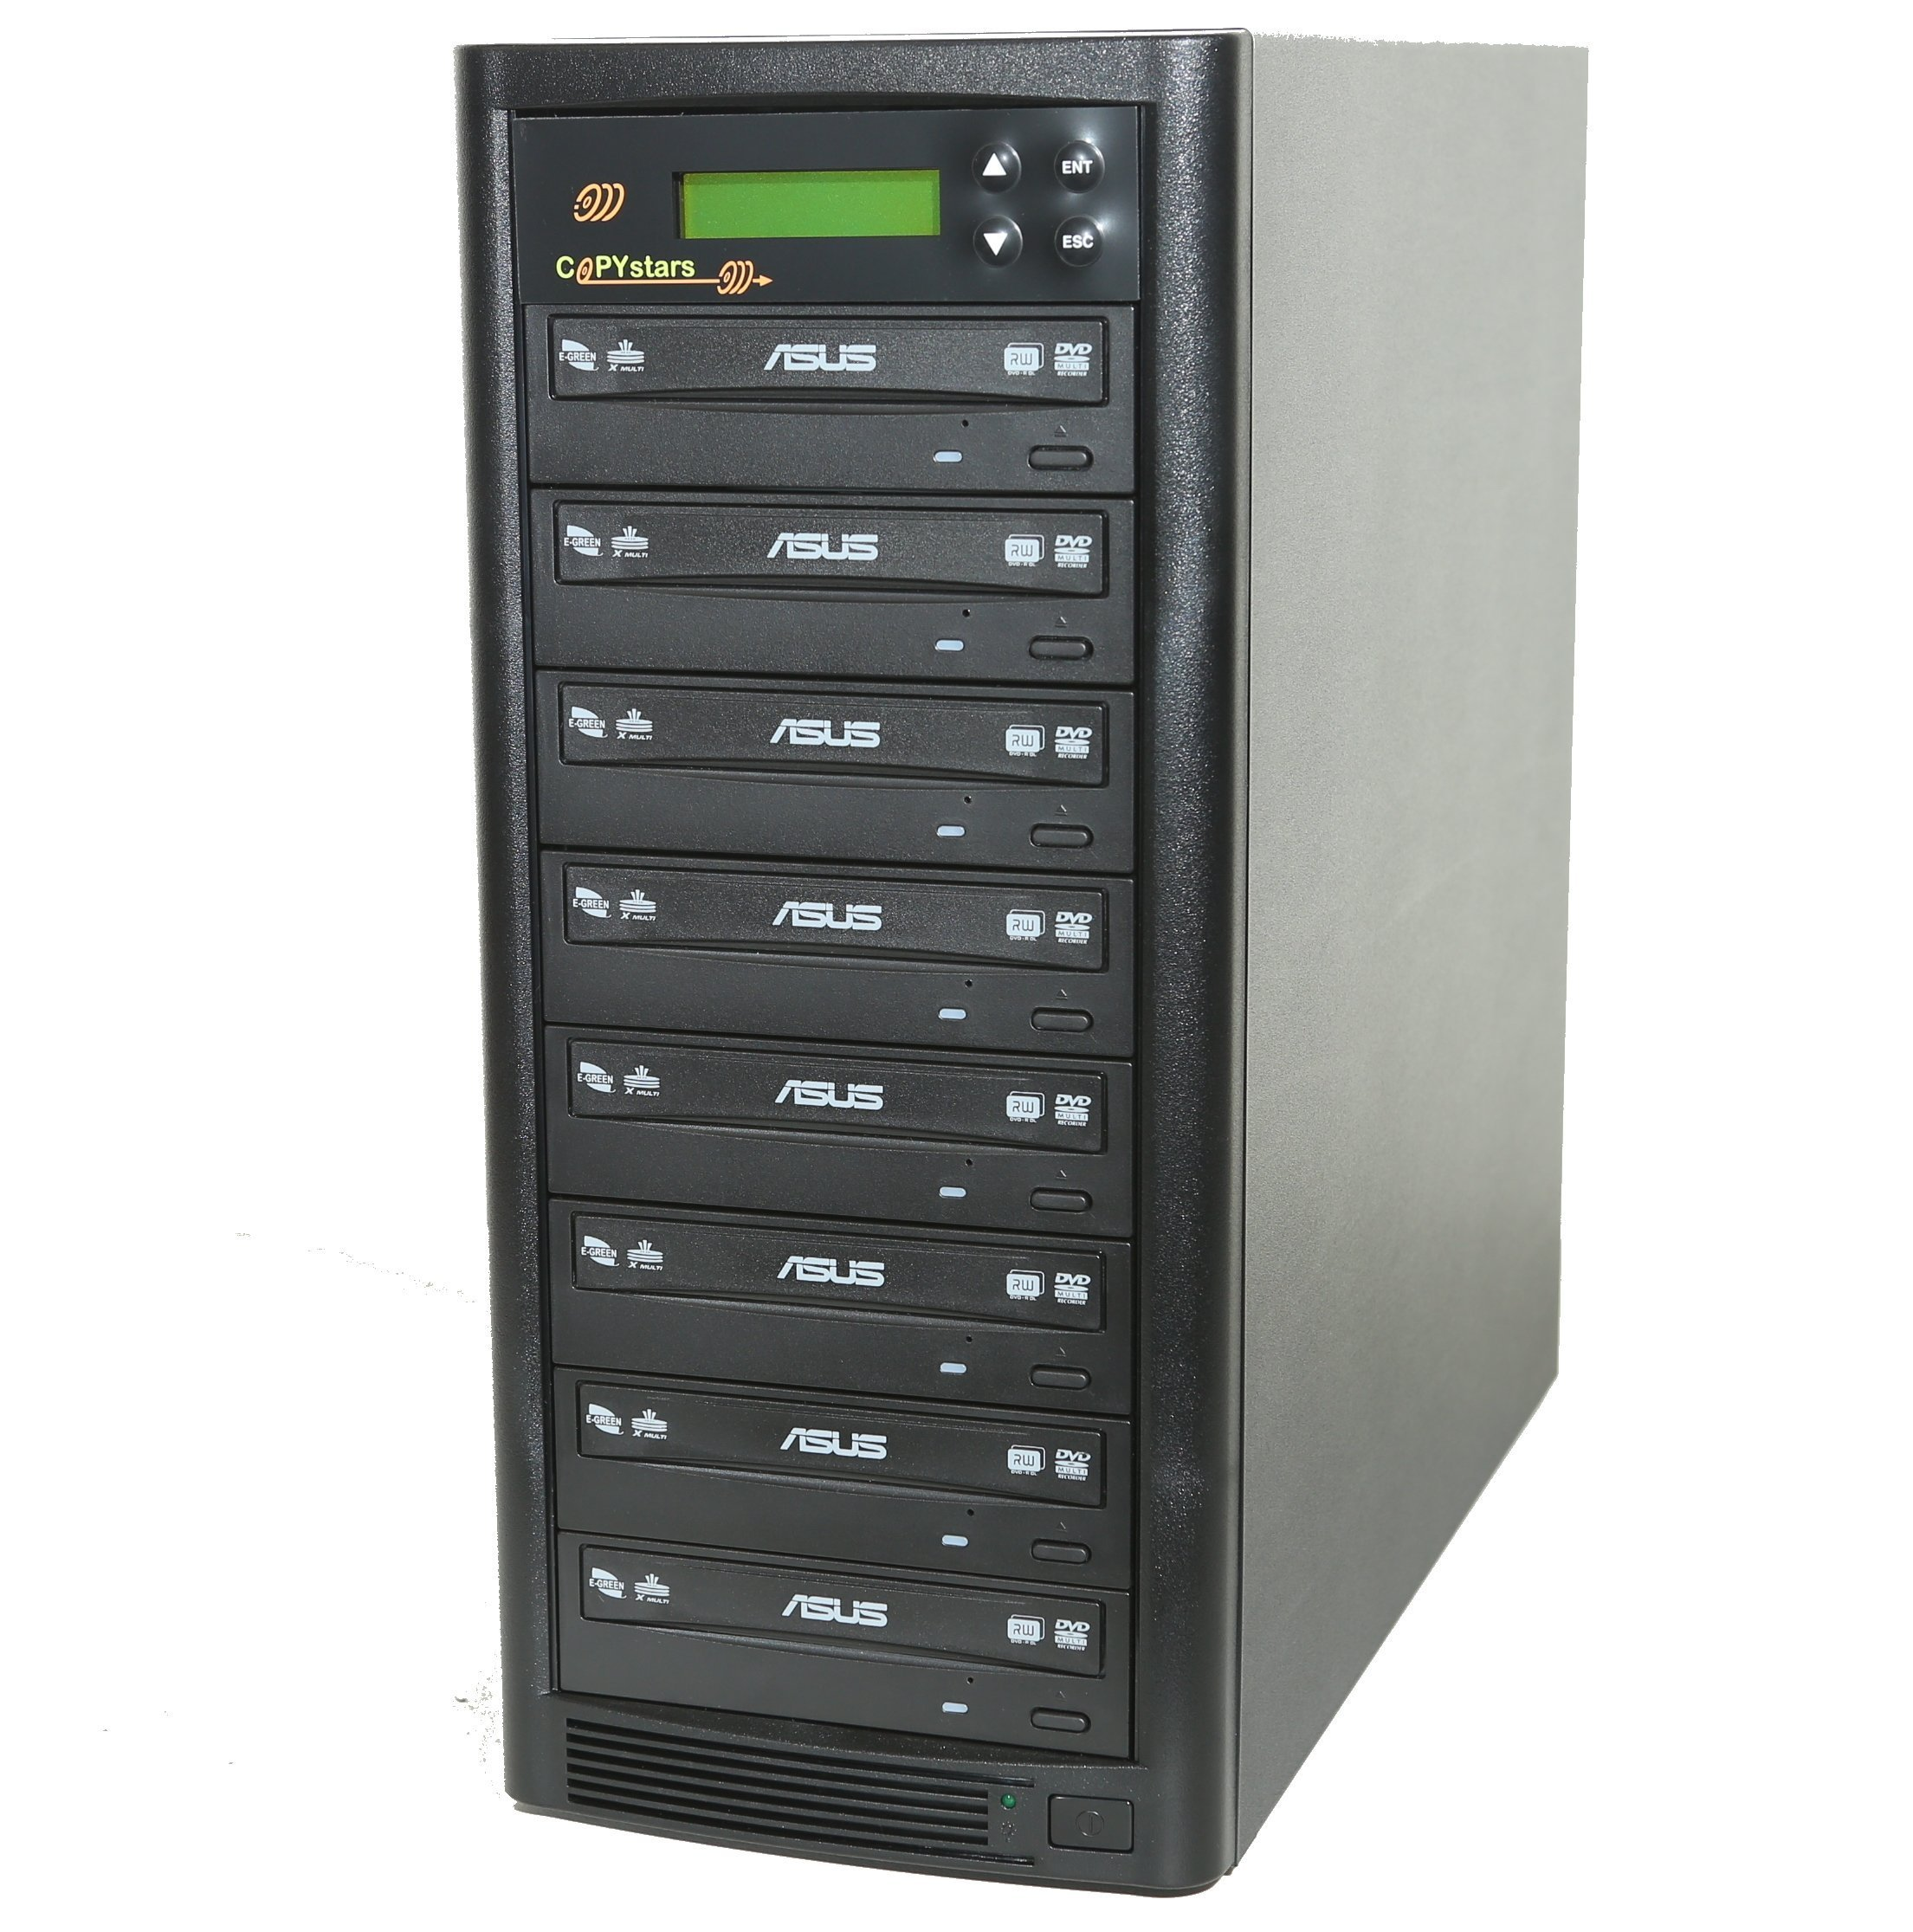 Galleon Copystars Dvd Burner Duplicator 24x Cd Dvd